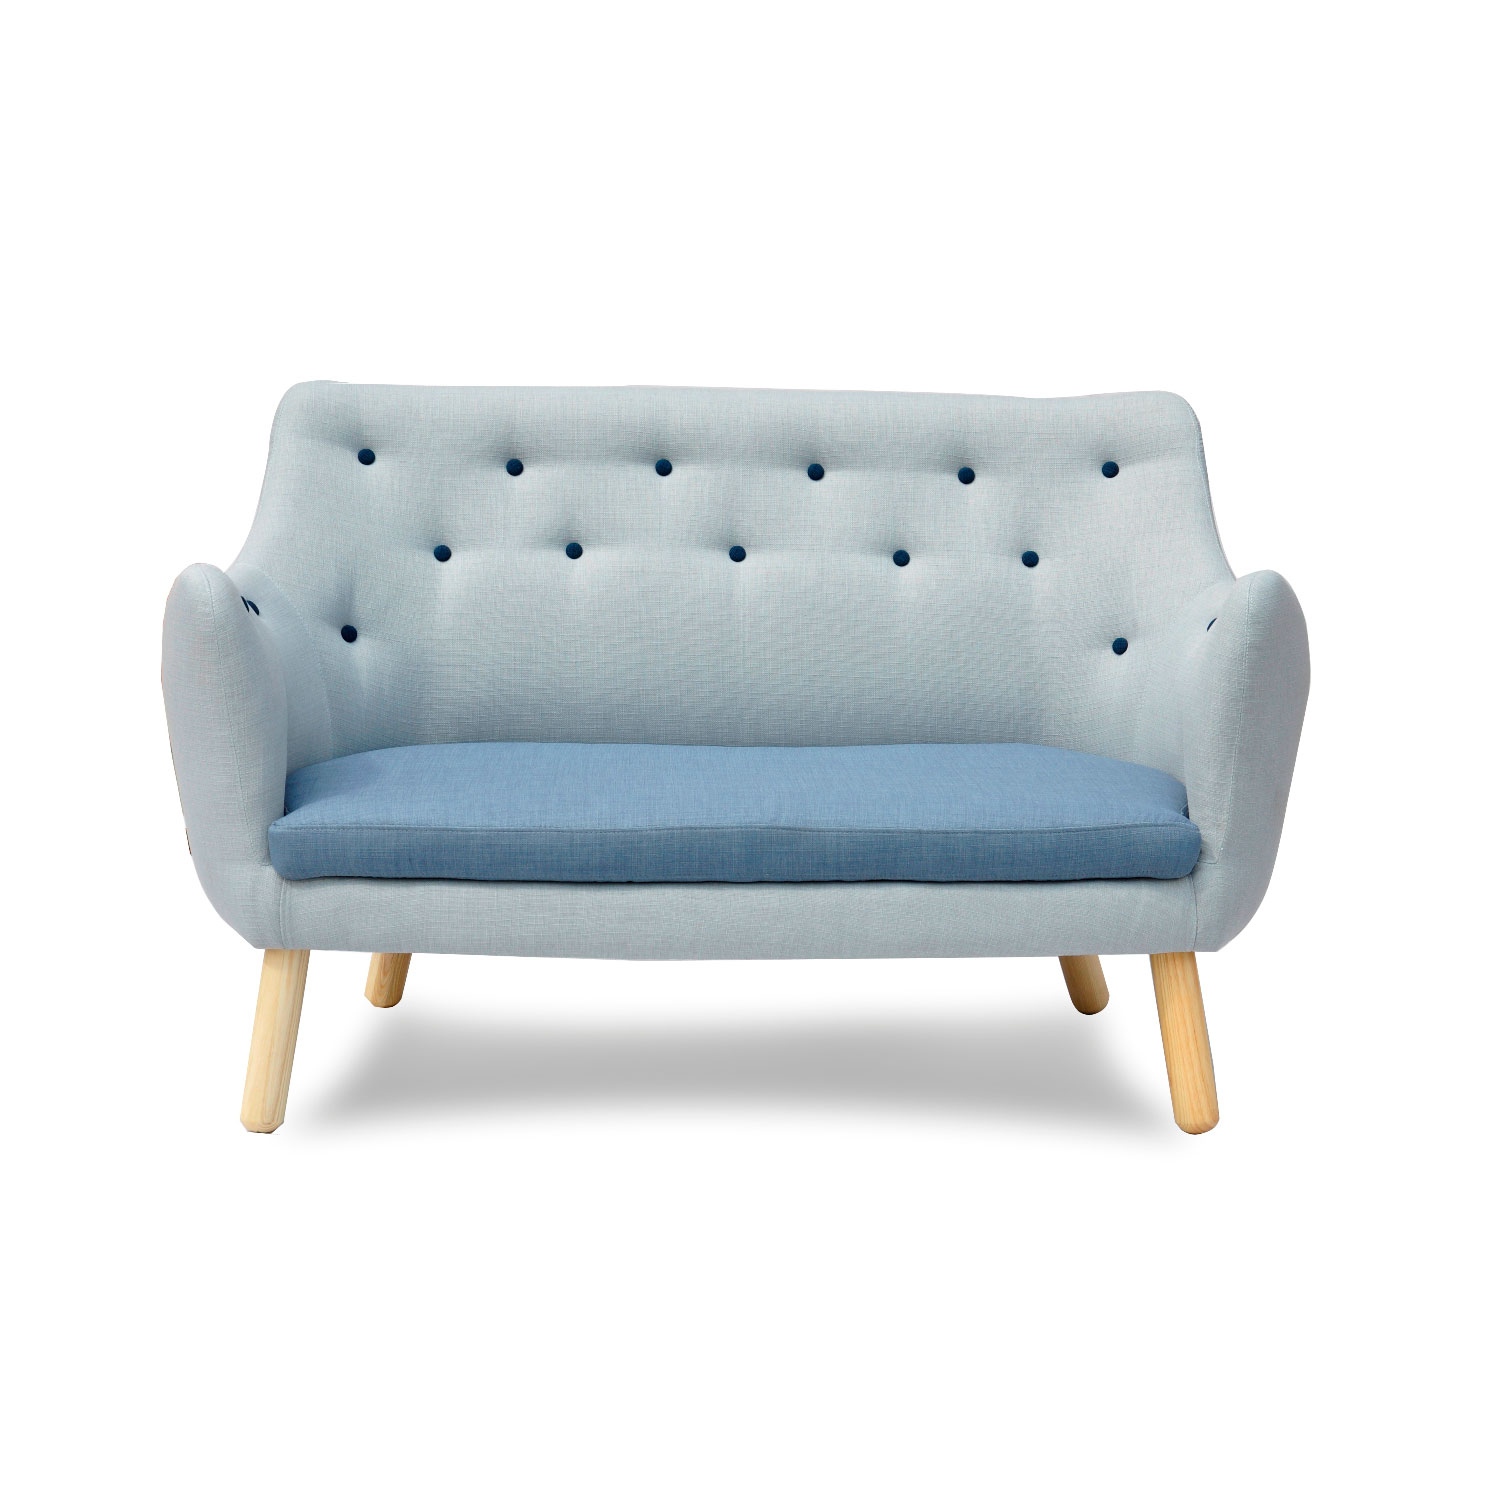 Small Loveseat IKEA Most Fitted Furniture for an Apartment Size